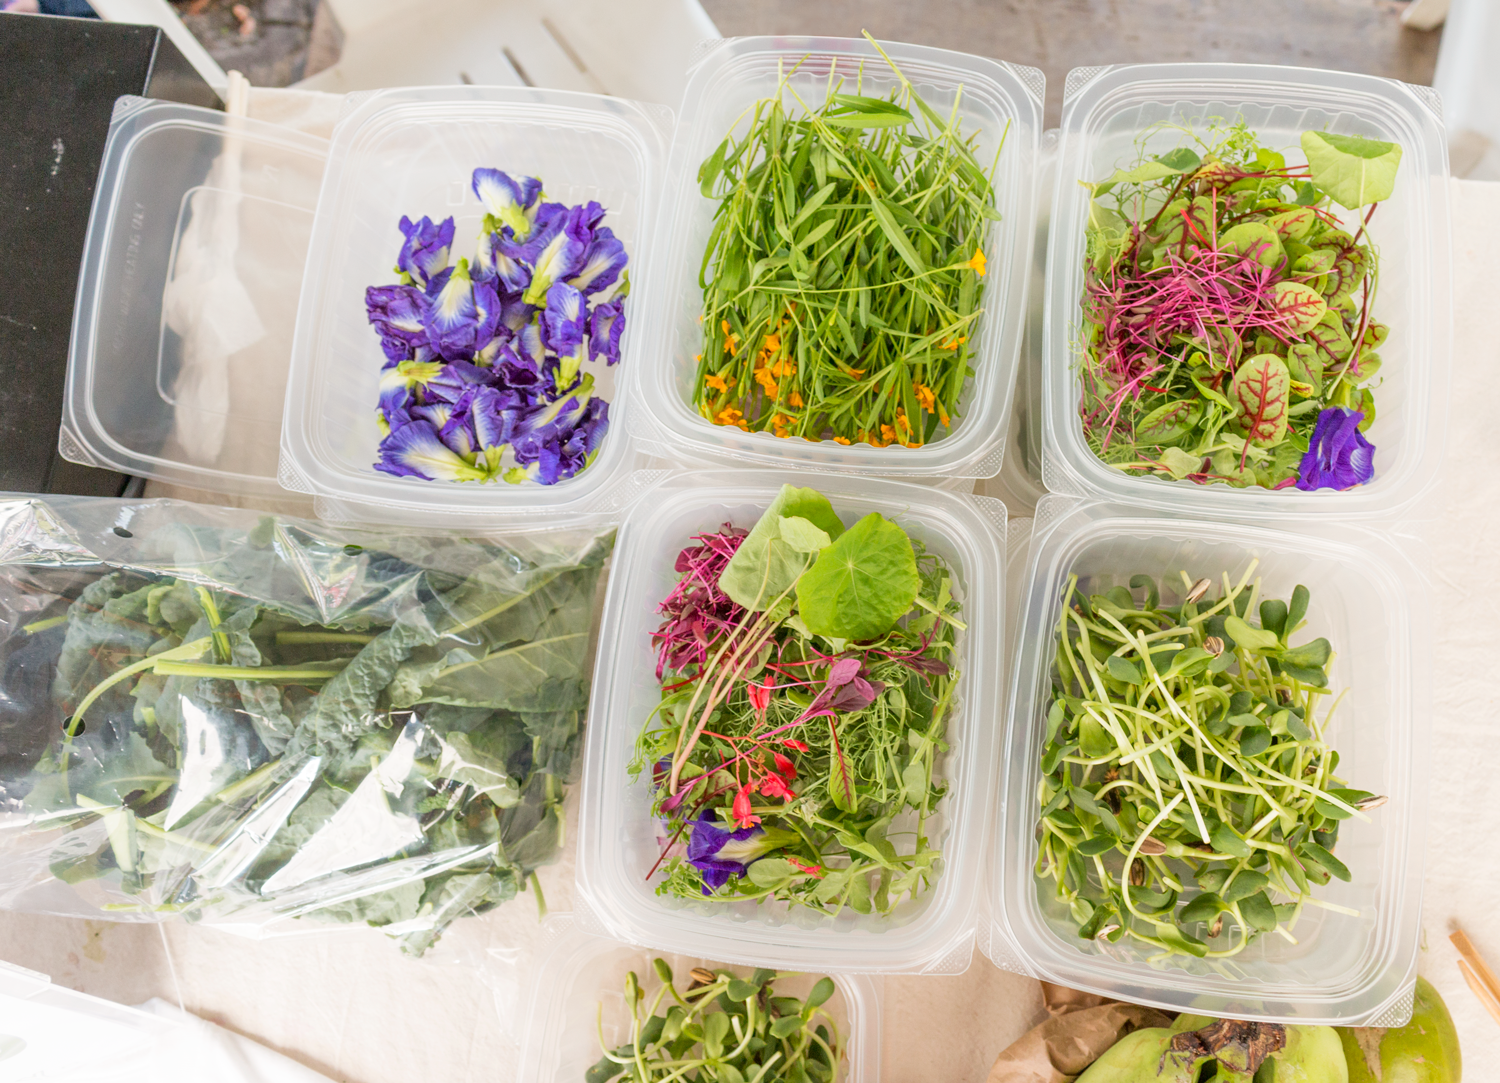 Beautiful edible flowers and microgreens by Edible Garden City